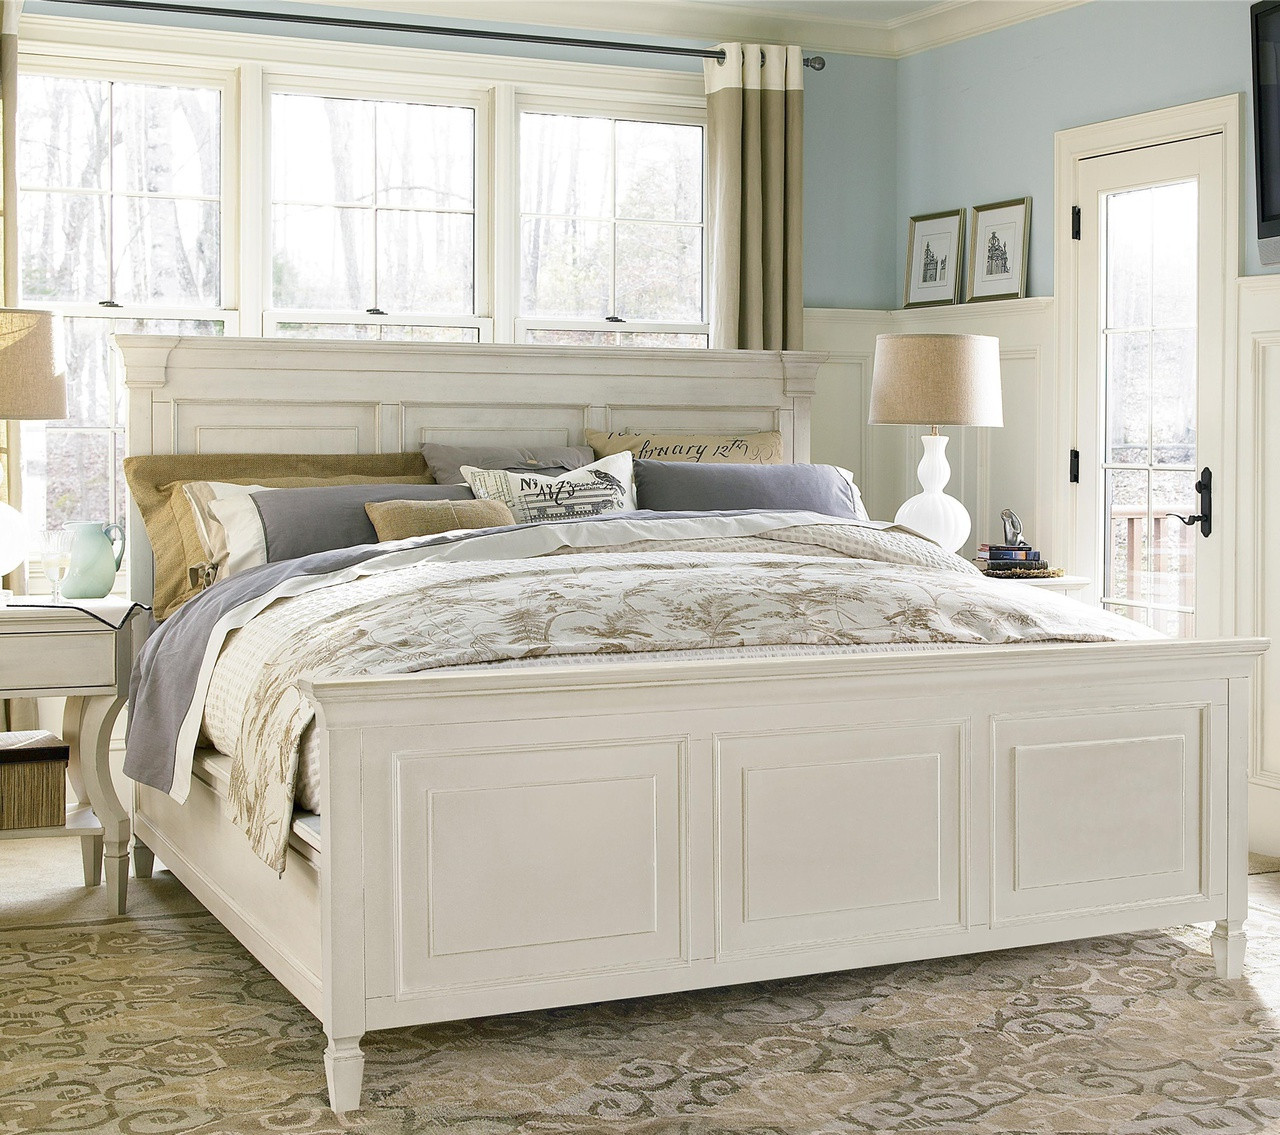 Country-Chic White King Panel Bed Frame